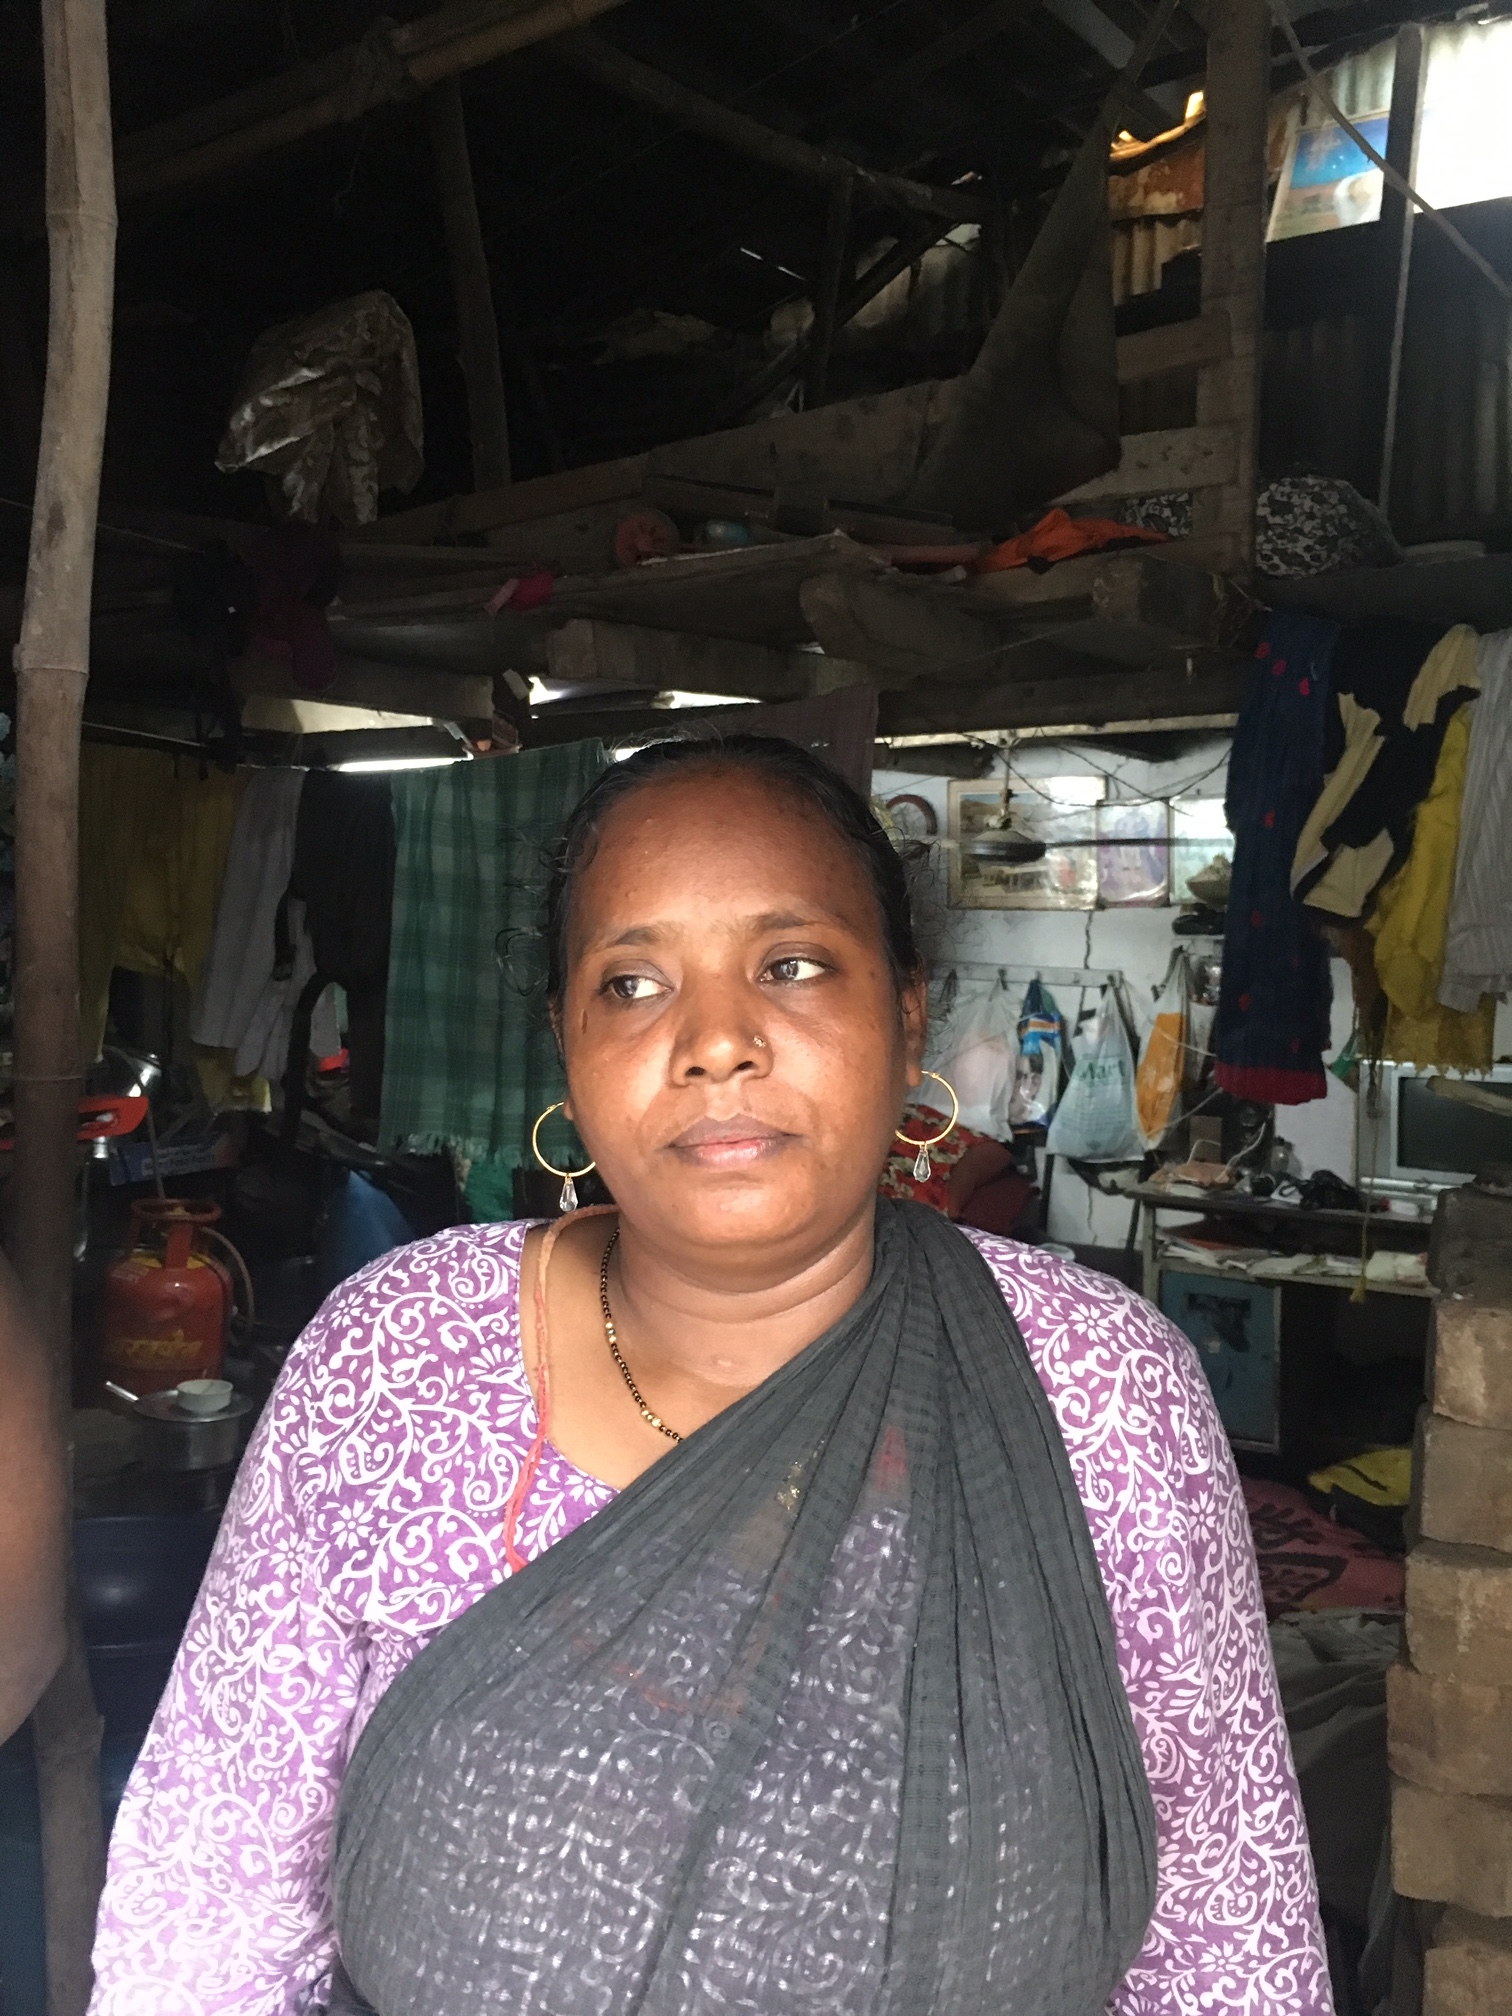 Shabnam Qureshi who lives in the Indira Nagar slum in Govandi. (Photo: Priyanka Vora)